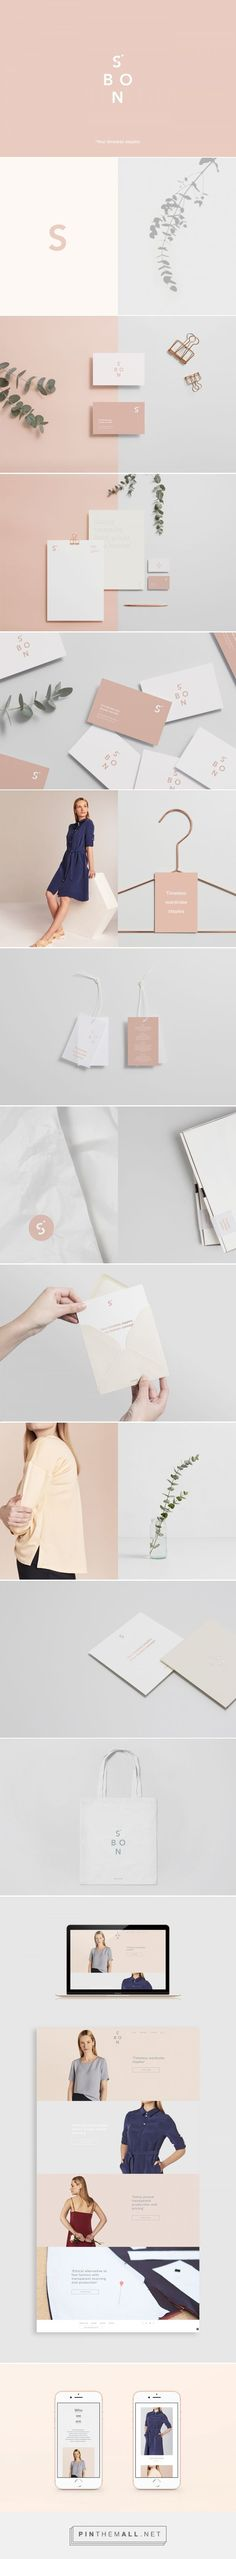 S.Bon Clothing Brand by Lidia Mínguez | Fivestar Branding Agency – Design and Branding Agency & Curated Inspiration Gallery #fashionbrand #branding #brand #brandidentity #design #designinspiration